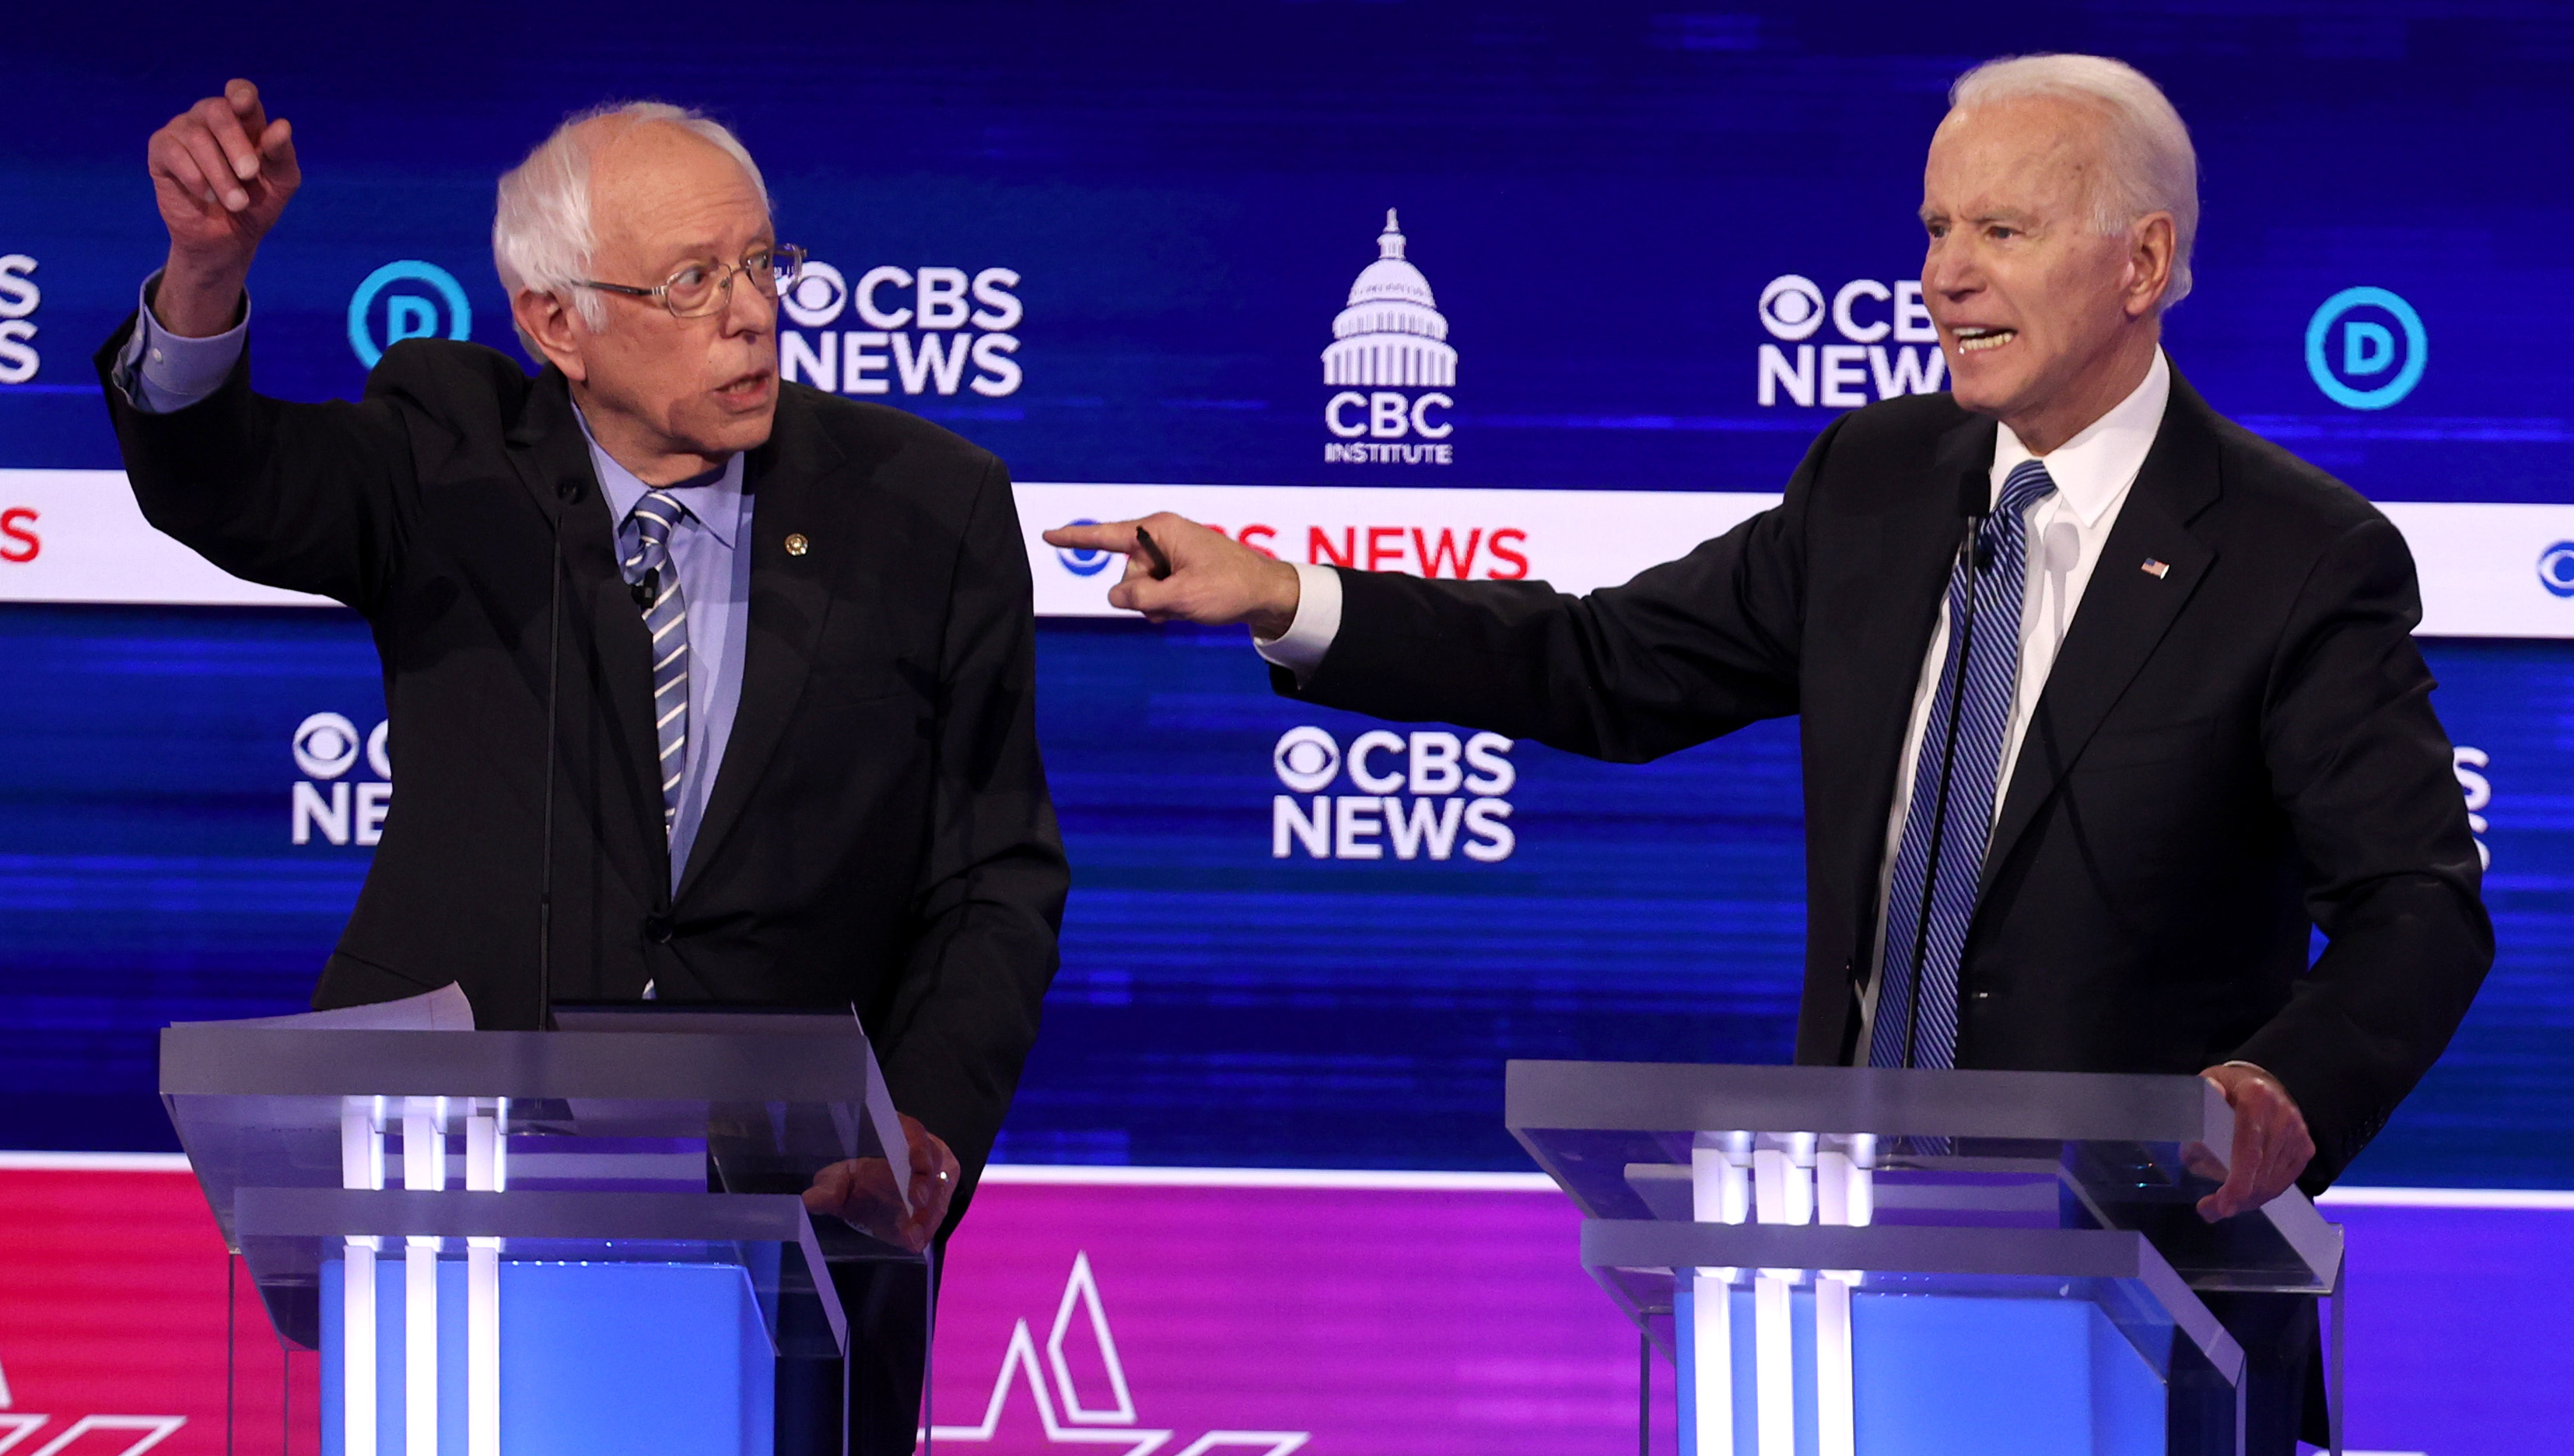 CHARLESTON, SOUTH CAROLINA - FEBRUARY 25: Democratic presidential candidate former Vice President Joe Biden speaks as Sen. Bernie Sanders (I-VT) (L) looks on during the Democratic presidential primary debate at the Charleston Gaillard Center on February 25, 2020 in Charleston, South Carolina. Seven candidates qualified for the debate, hosted by CBS News and Congressional Black Caucus Institute, ahead of South Carolina's primary in four days. (Photo by Win McNamee/Getty Images)